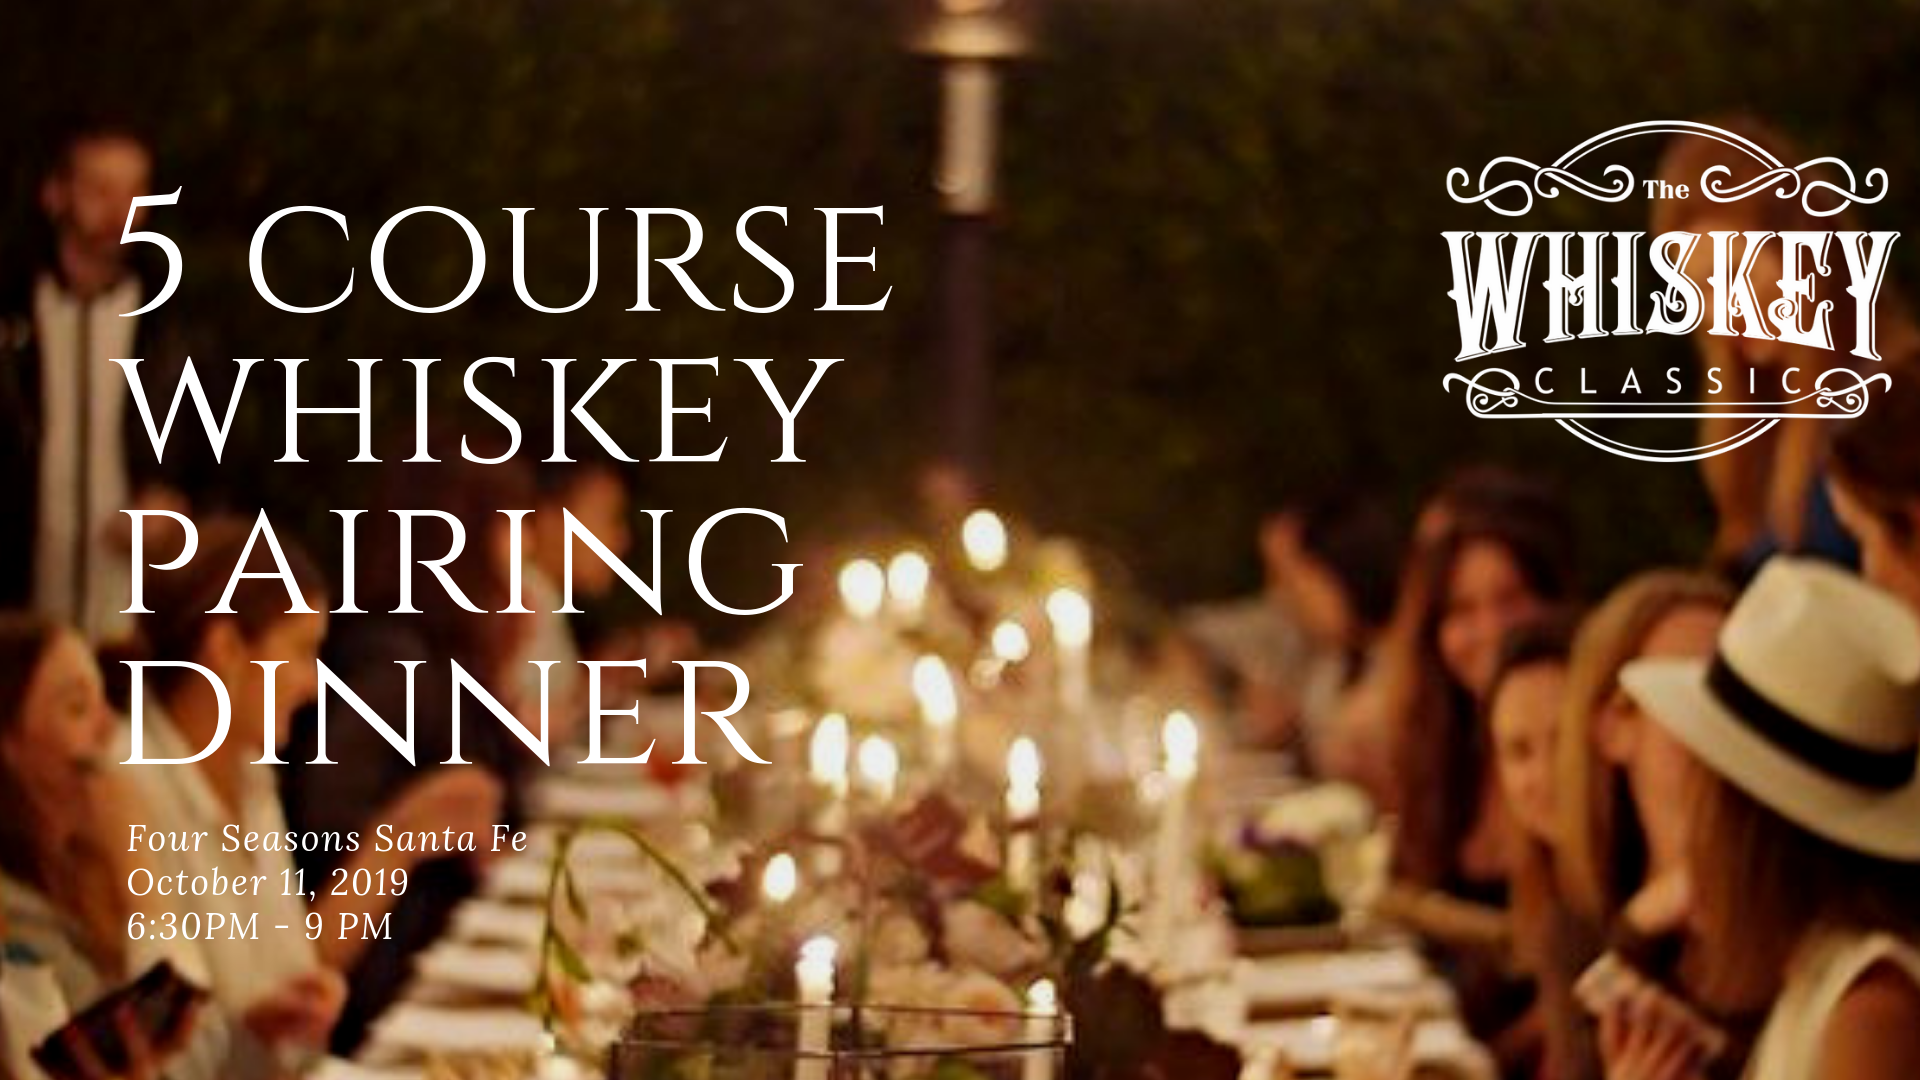 5 course whiskey pairing dinner.png